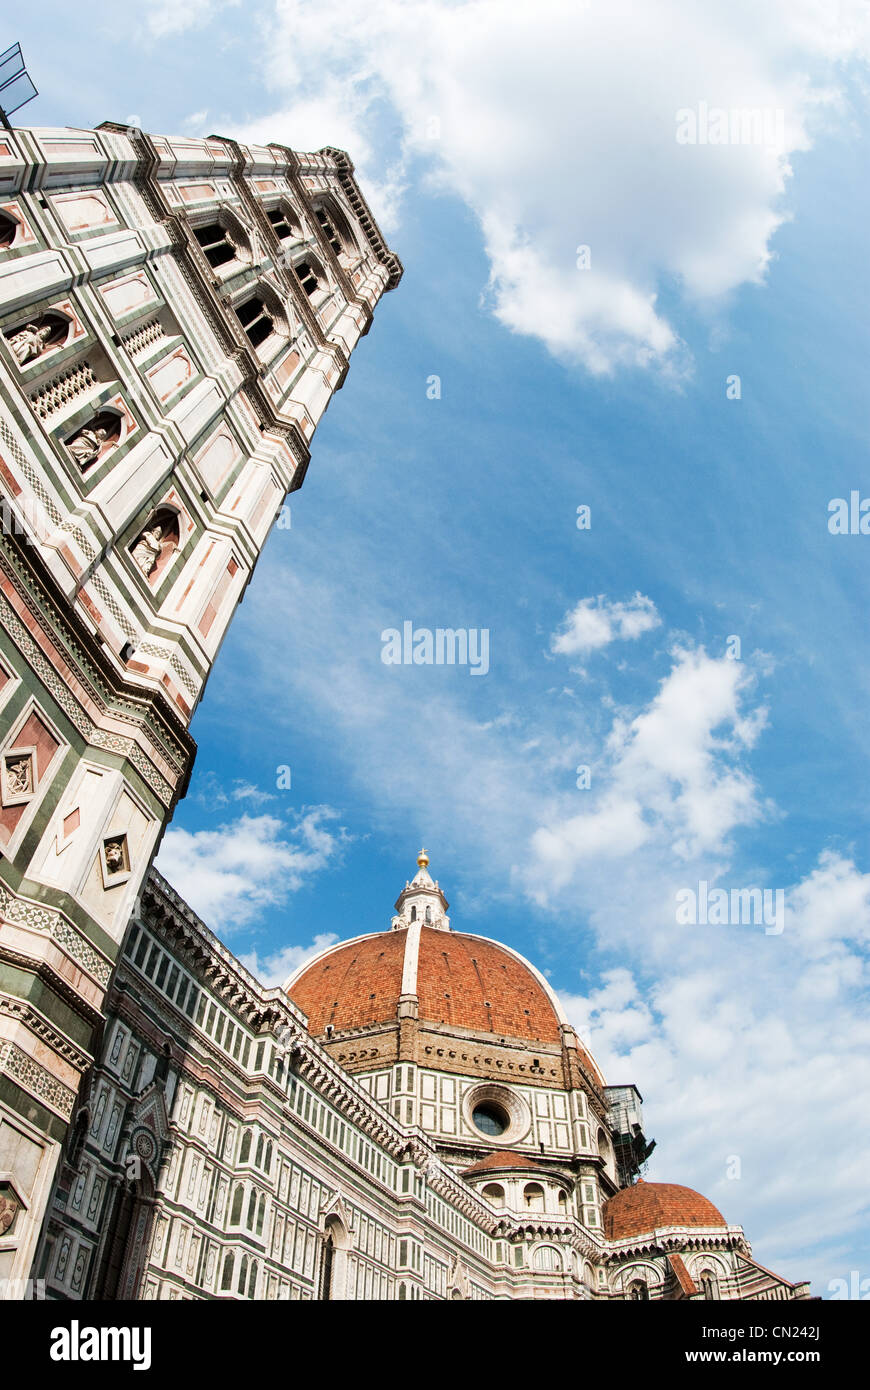 Florence cathedral, Florence, Italy - Stock Image